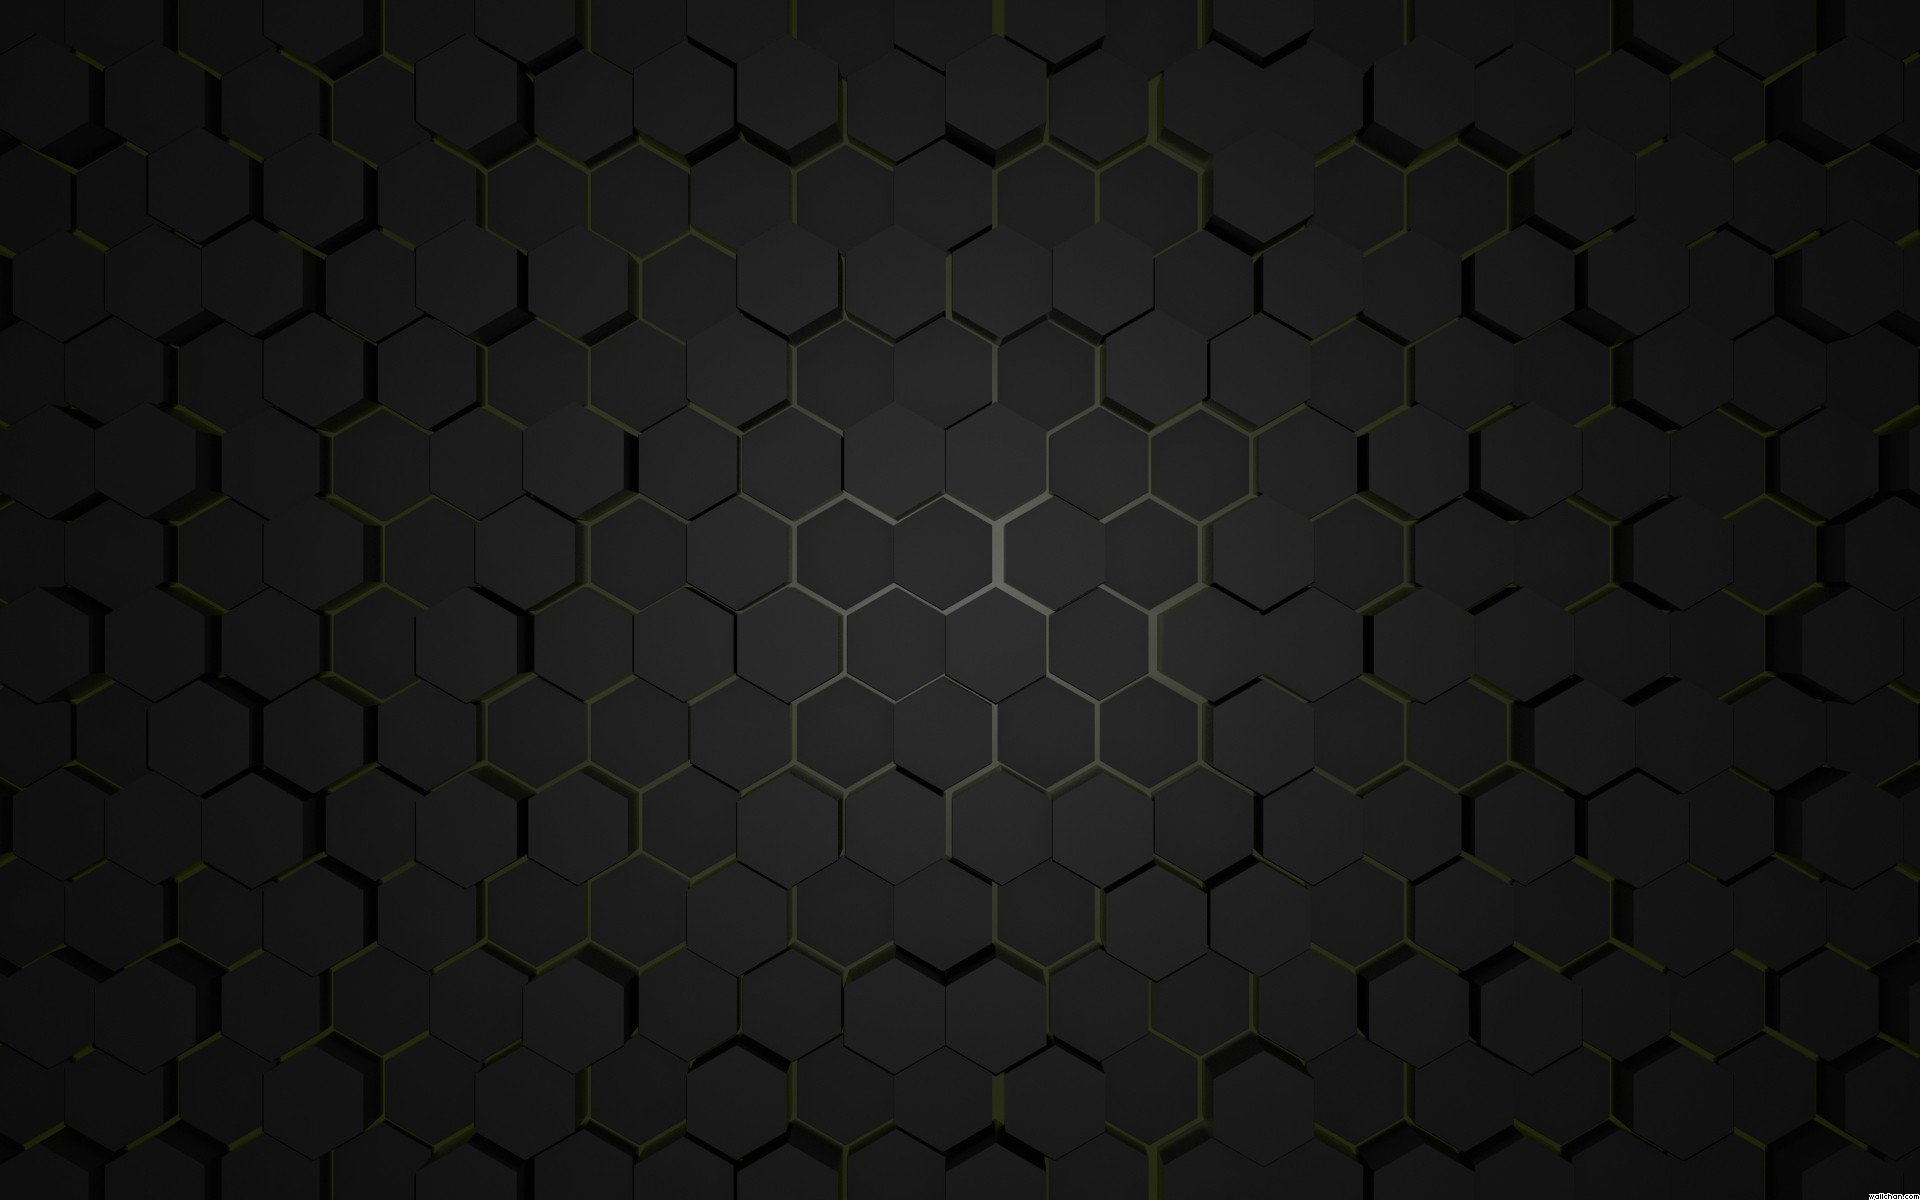 Abstract wallpaper 1080p 71 images - Black abstract background ...